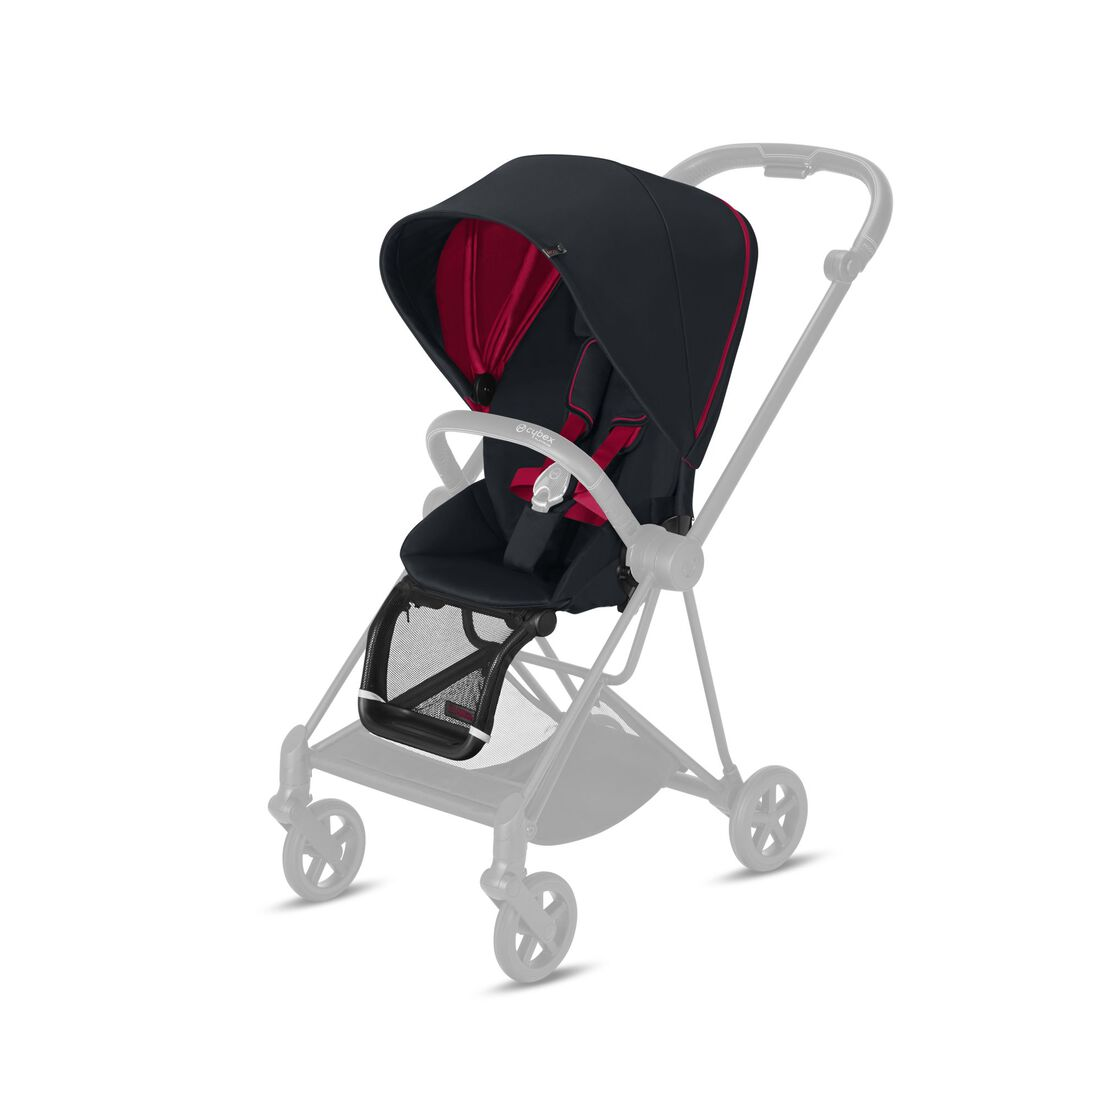 CYBEX Mios Seat Pack - Ferrari Victory Black in Ferrari Victory Black large image number 1